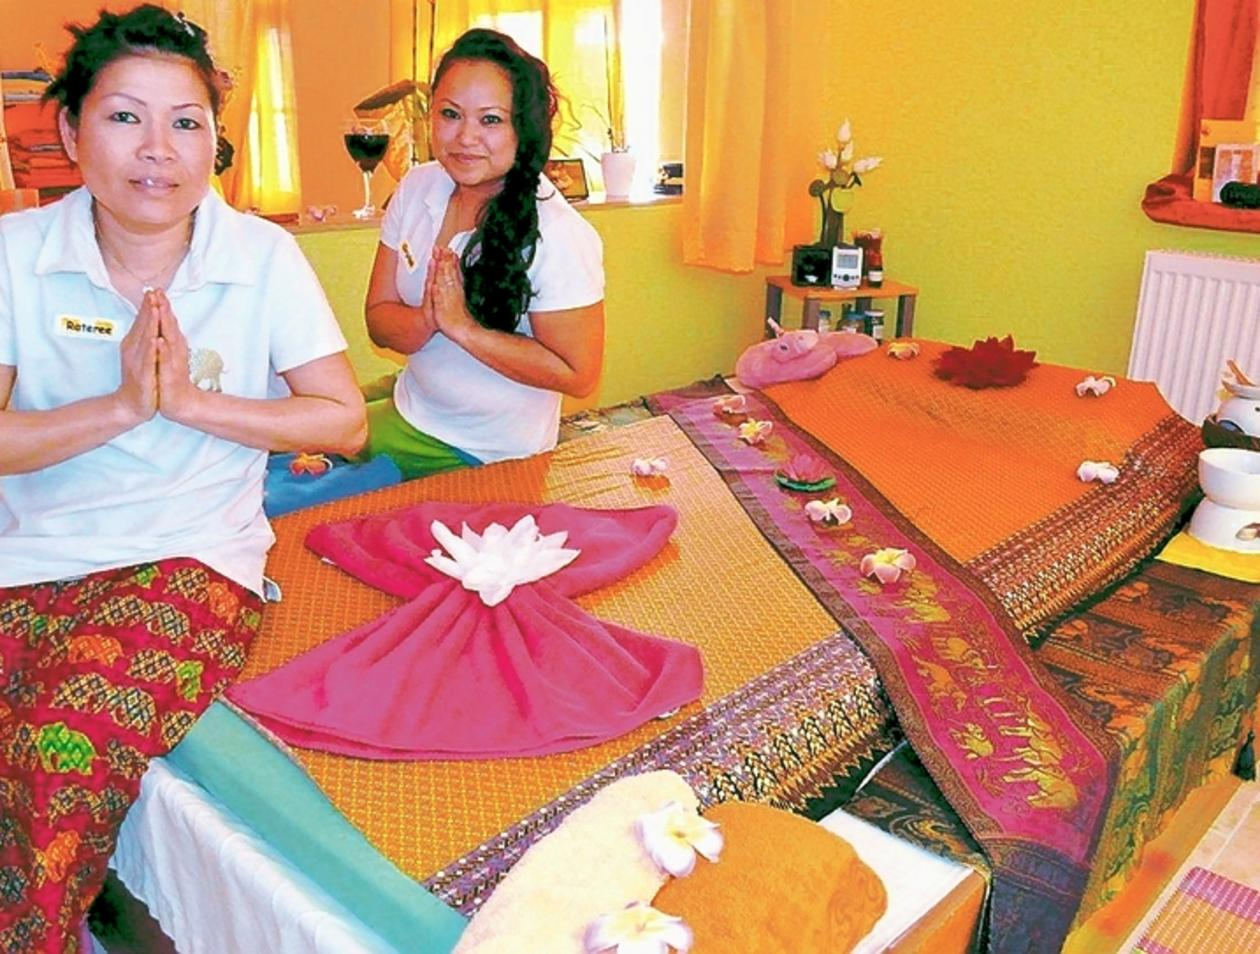 Thai massage werne